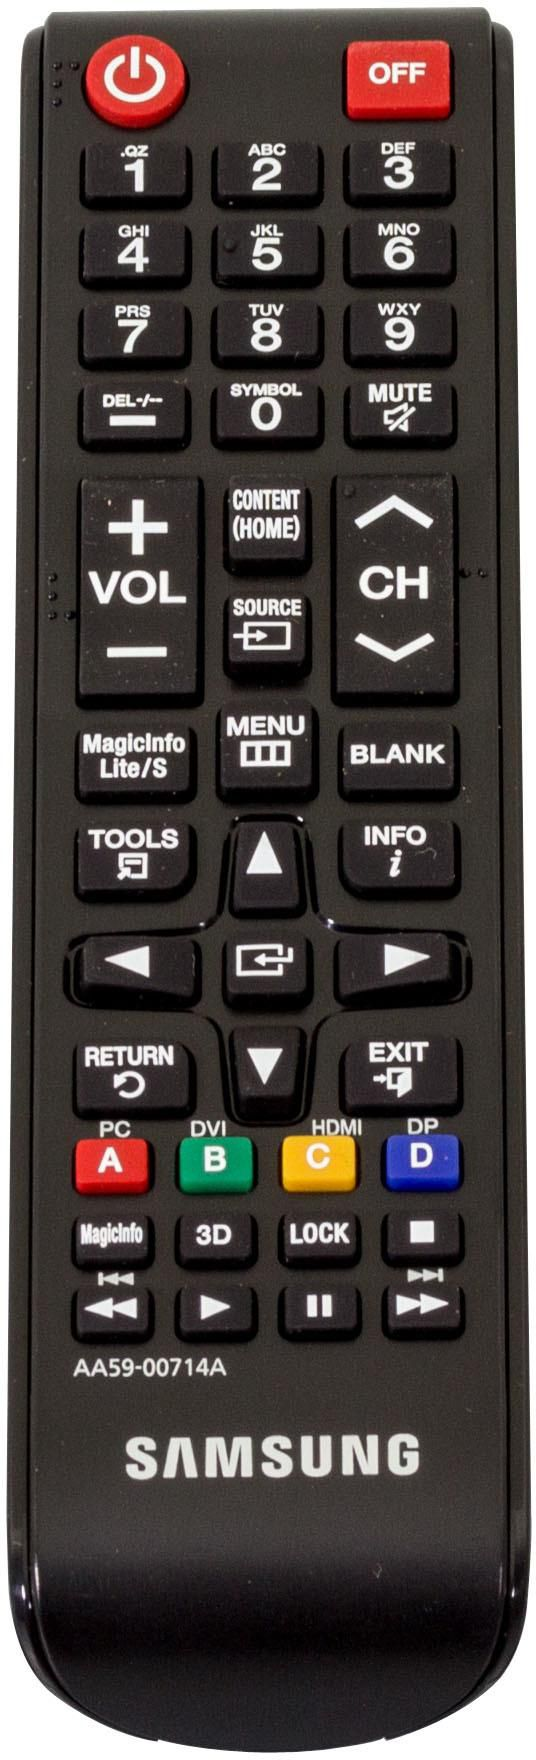 Samsung Remote Control TM1240A - Approx 1-3 working day lead.